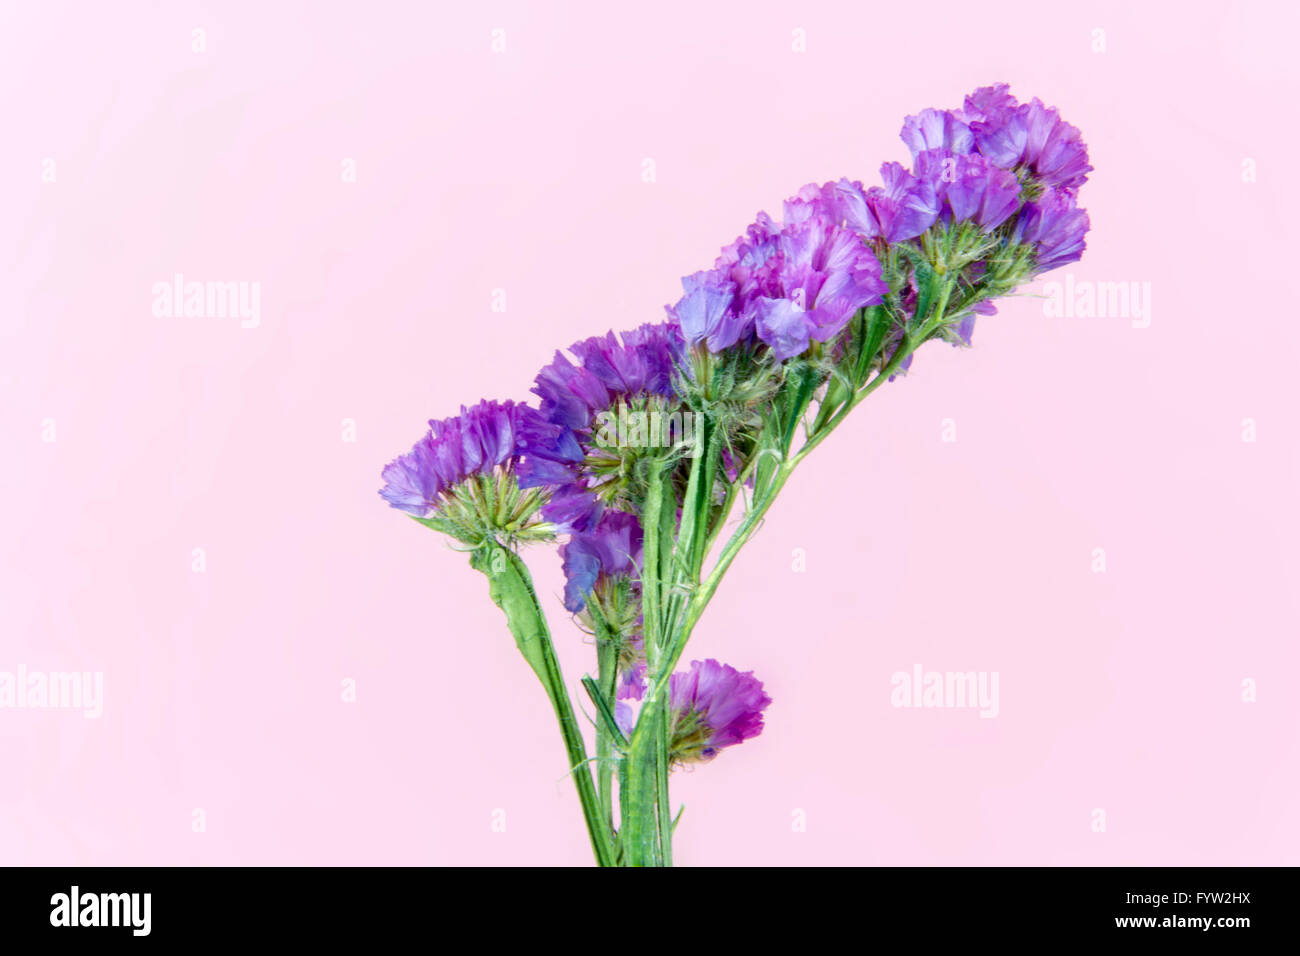 plant, flower, bloom, blossom, flora, dry flowers, pink background - Stock Image